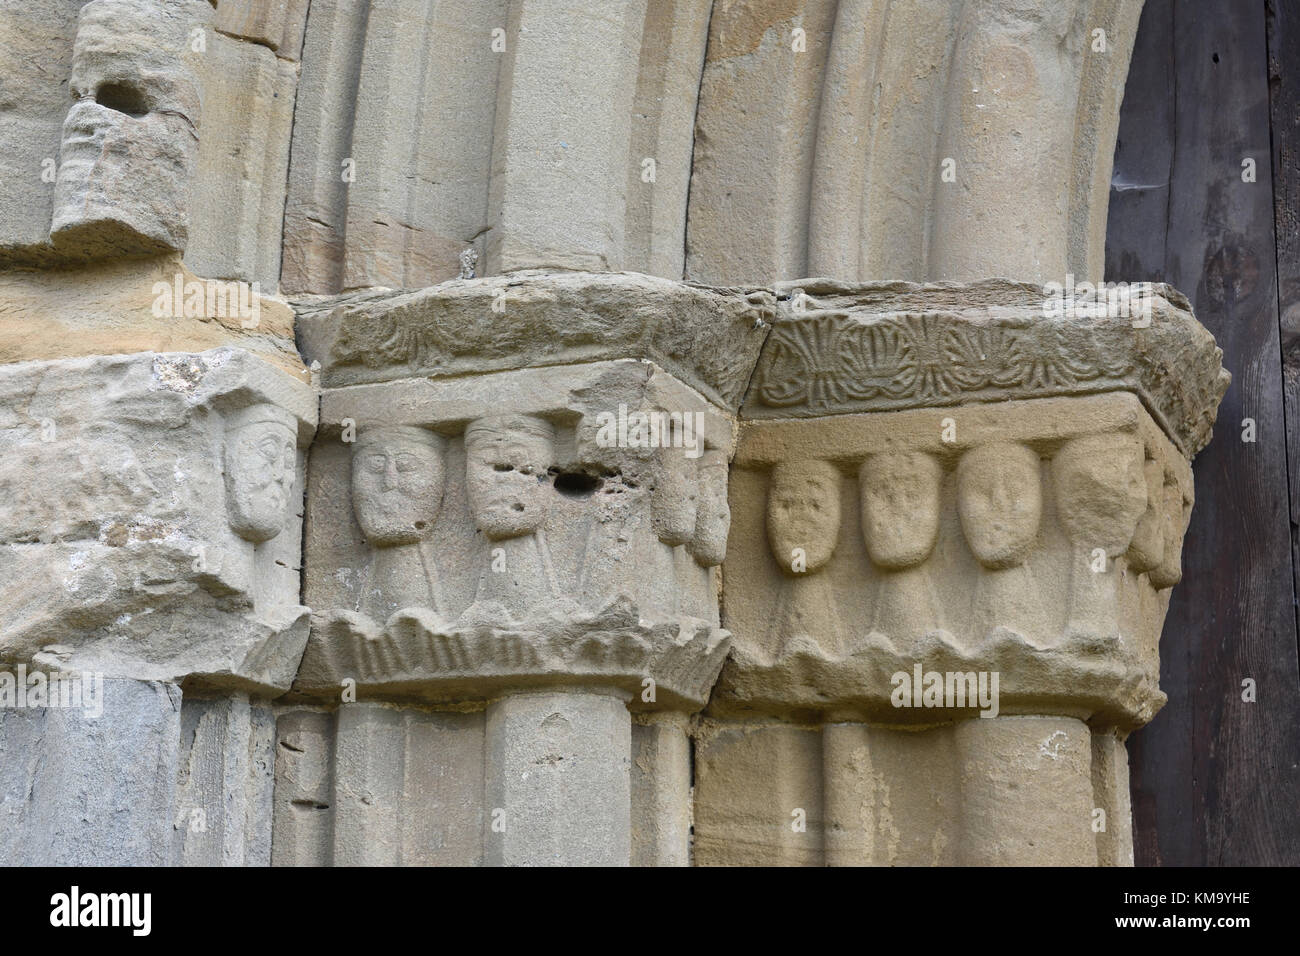 Gothic Capitals Church Of Santa Maria De Lillet In La Poble Bergueda